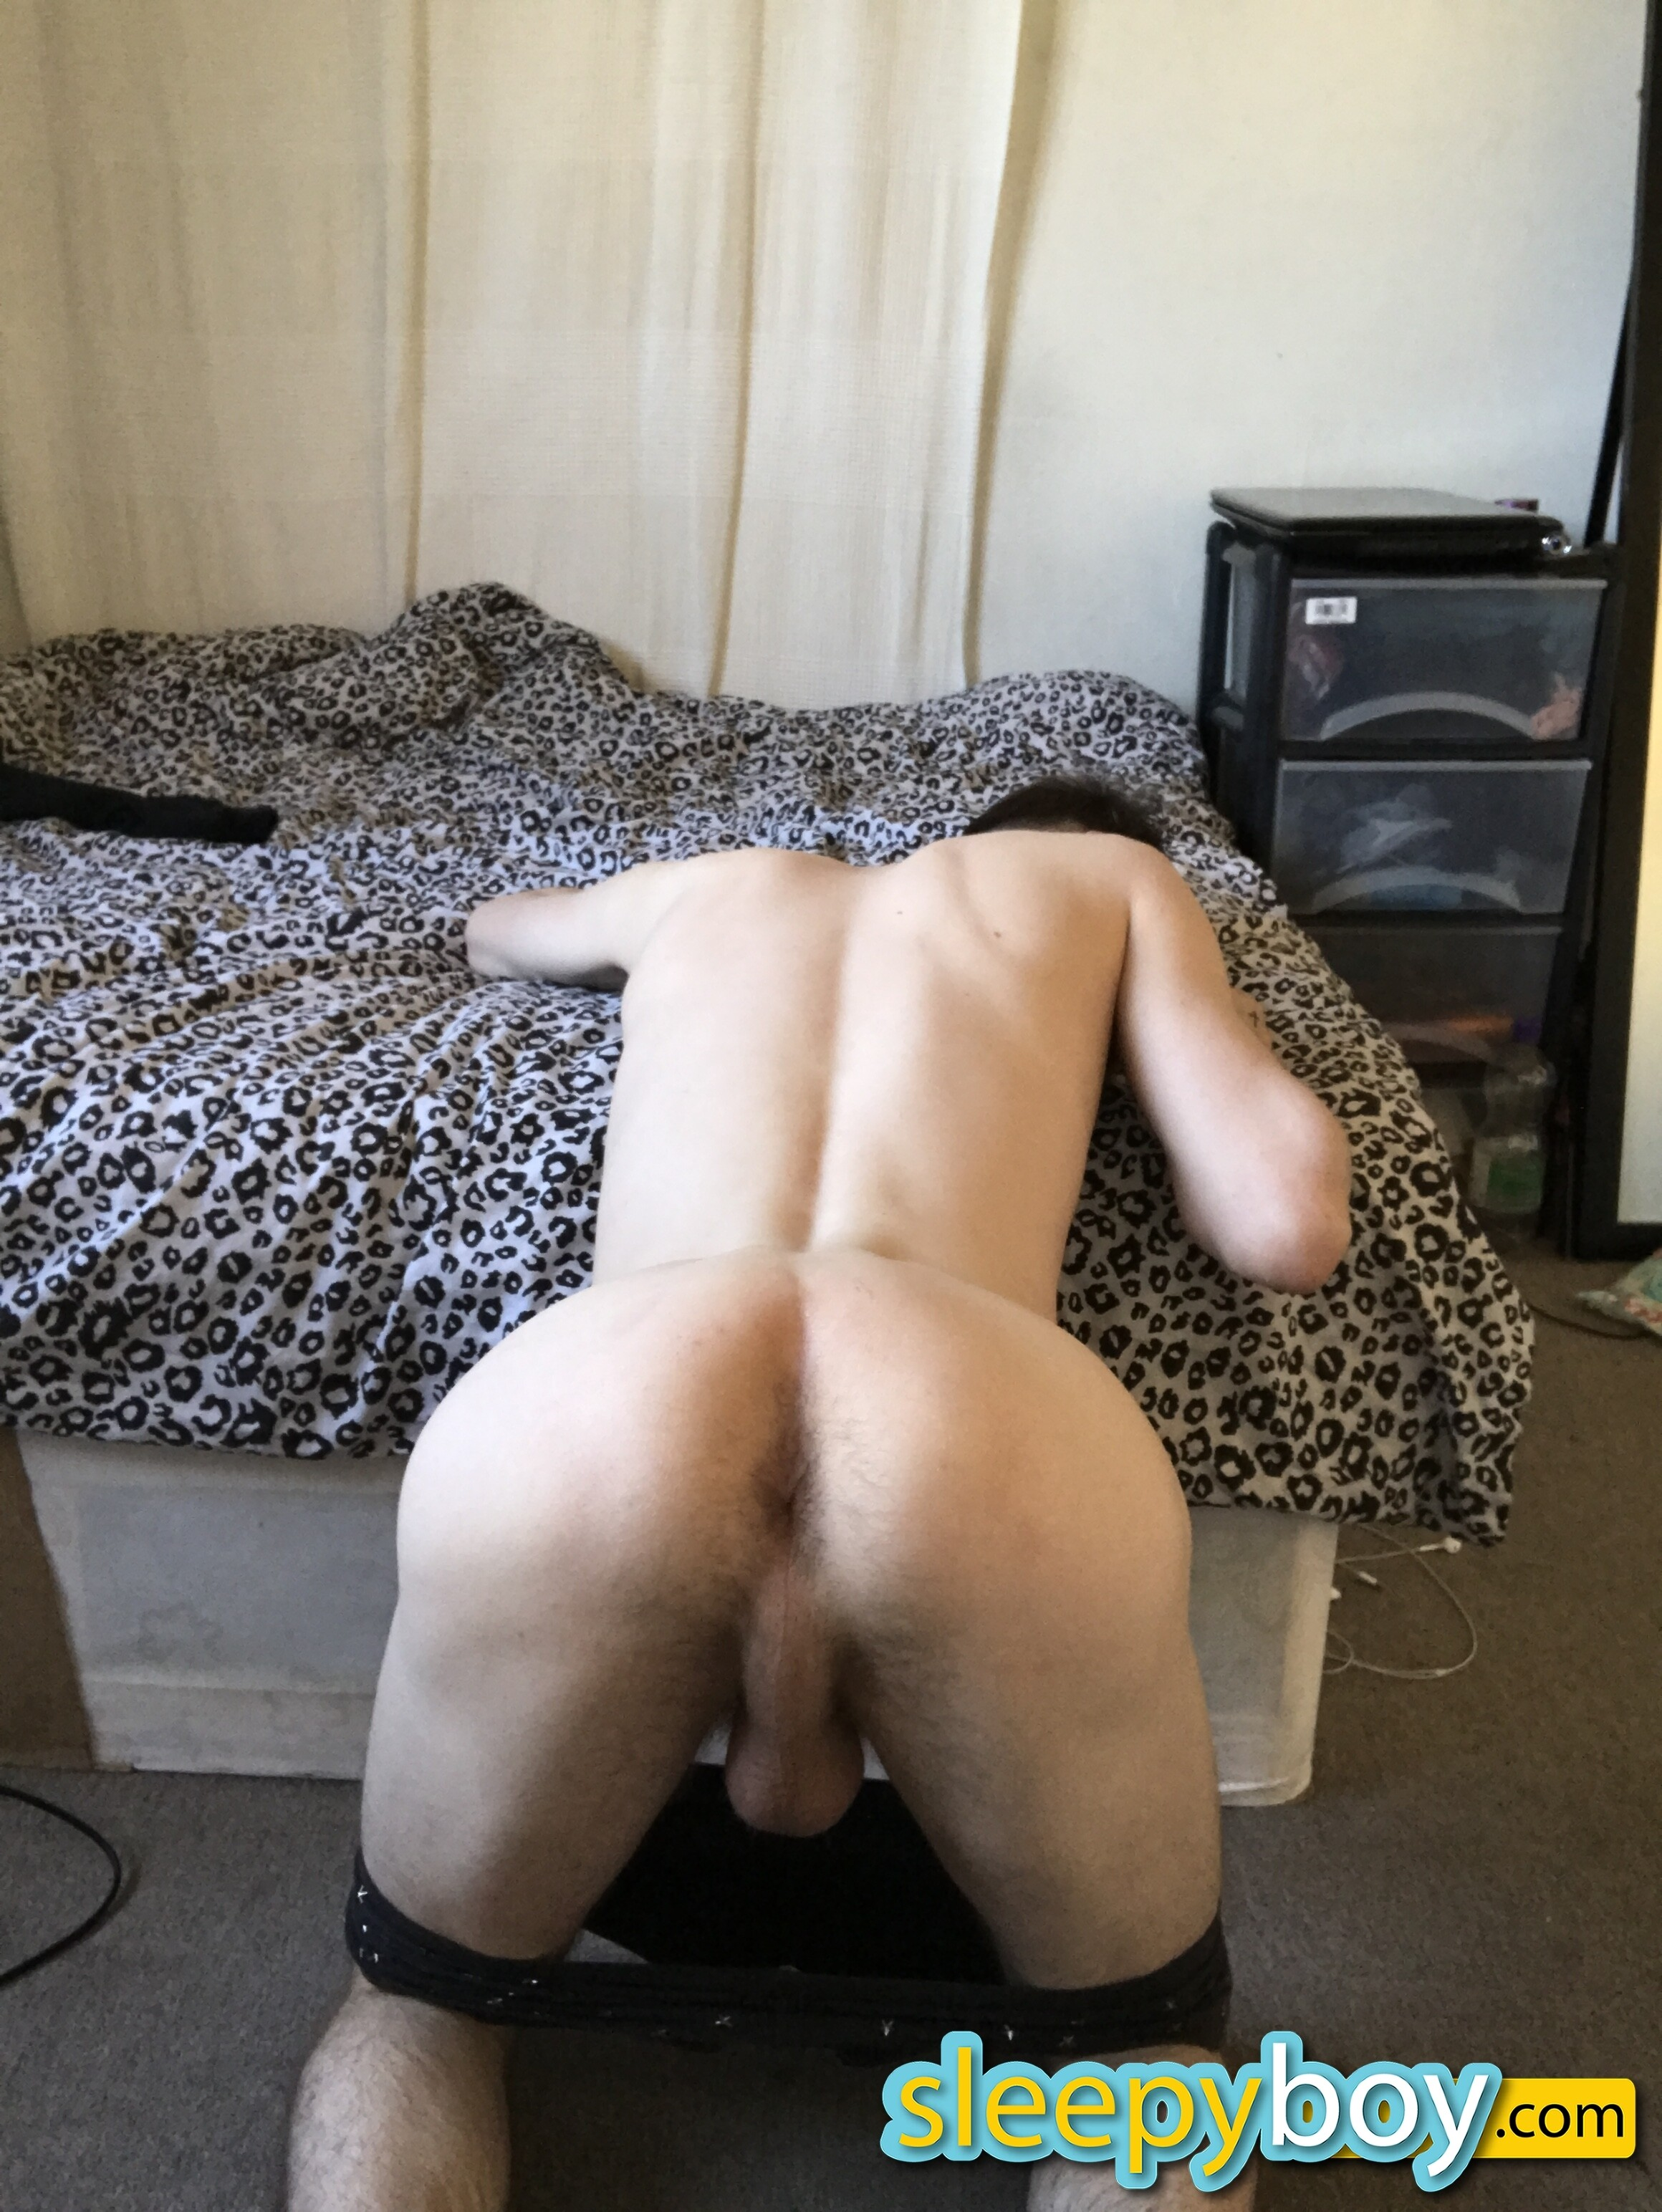 angel escort ibiza gay escort